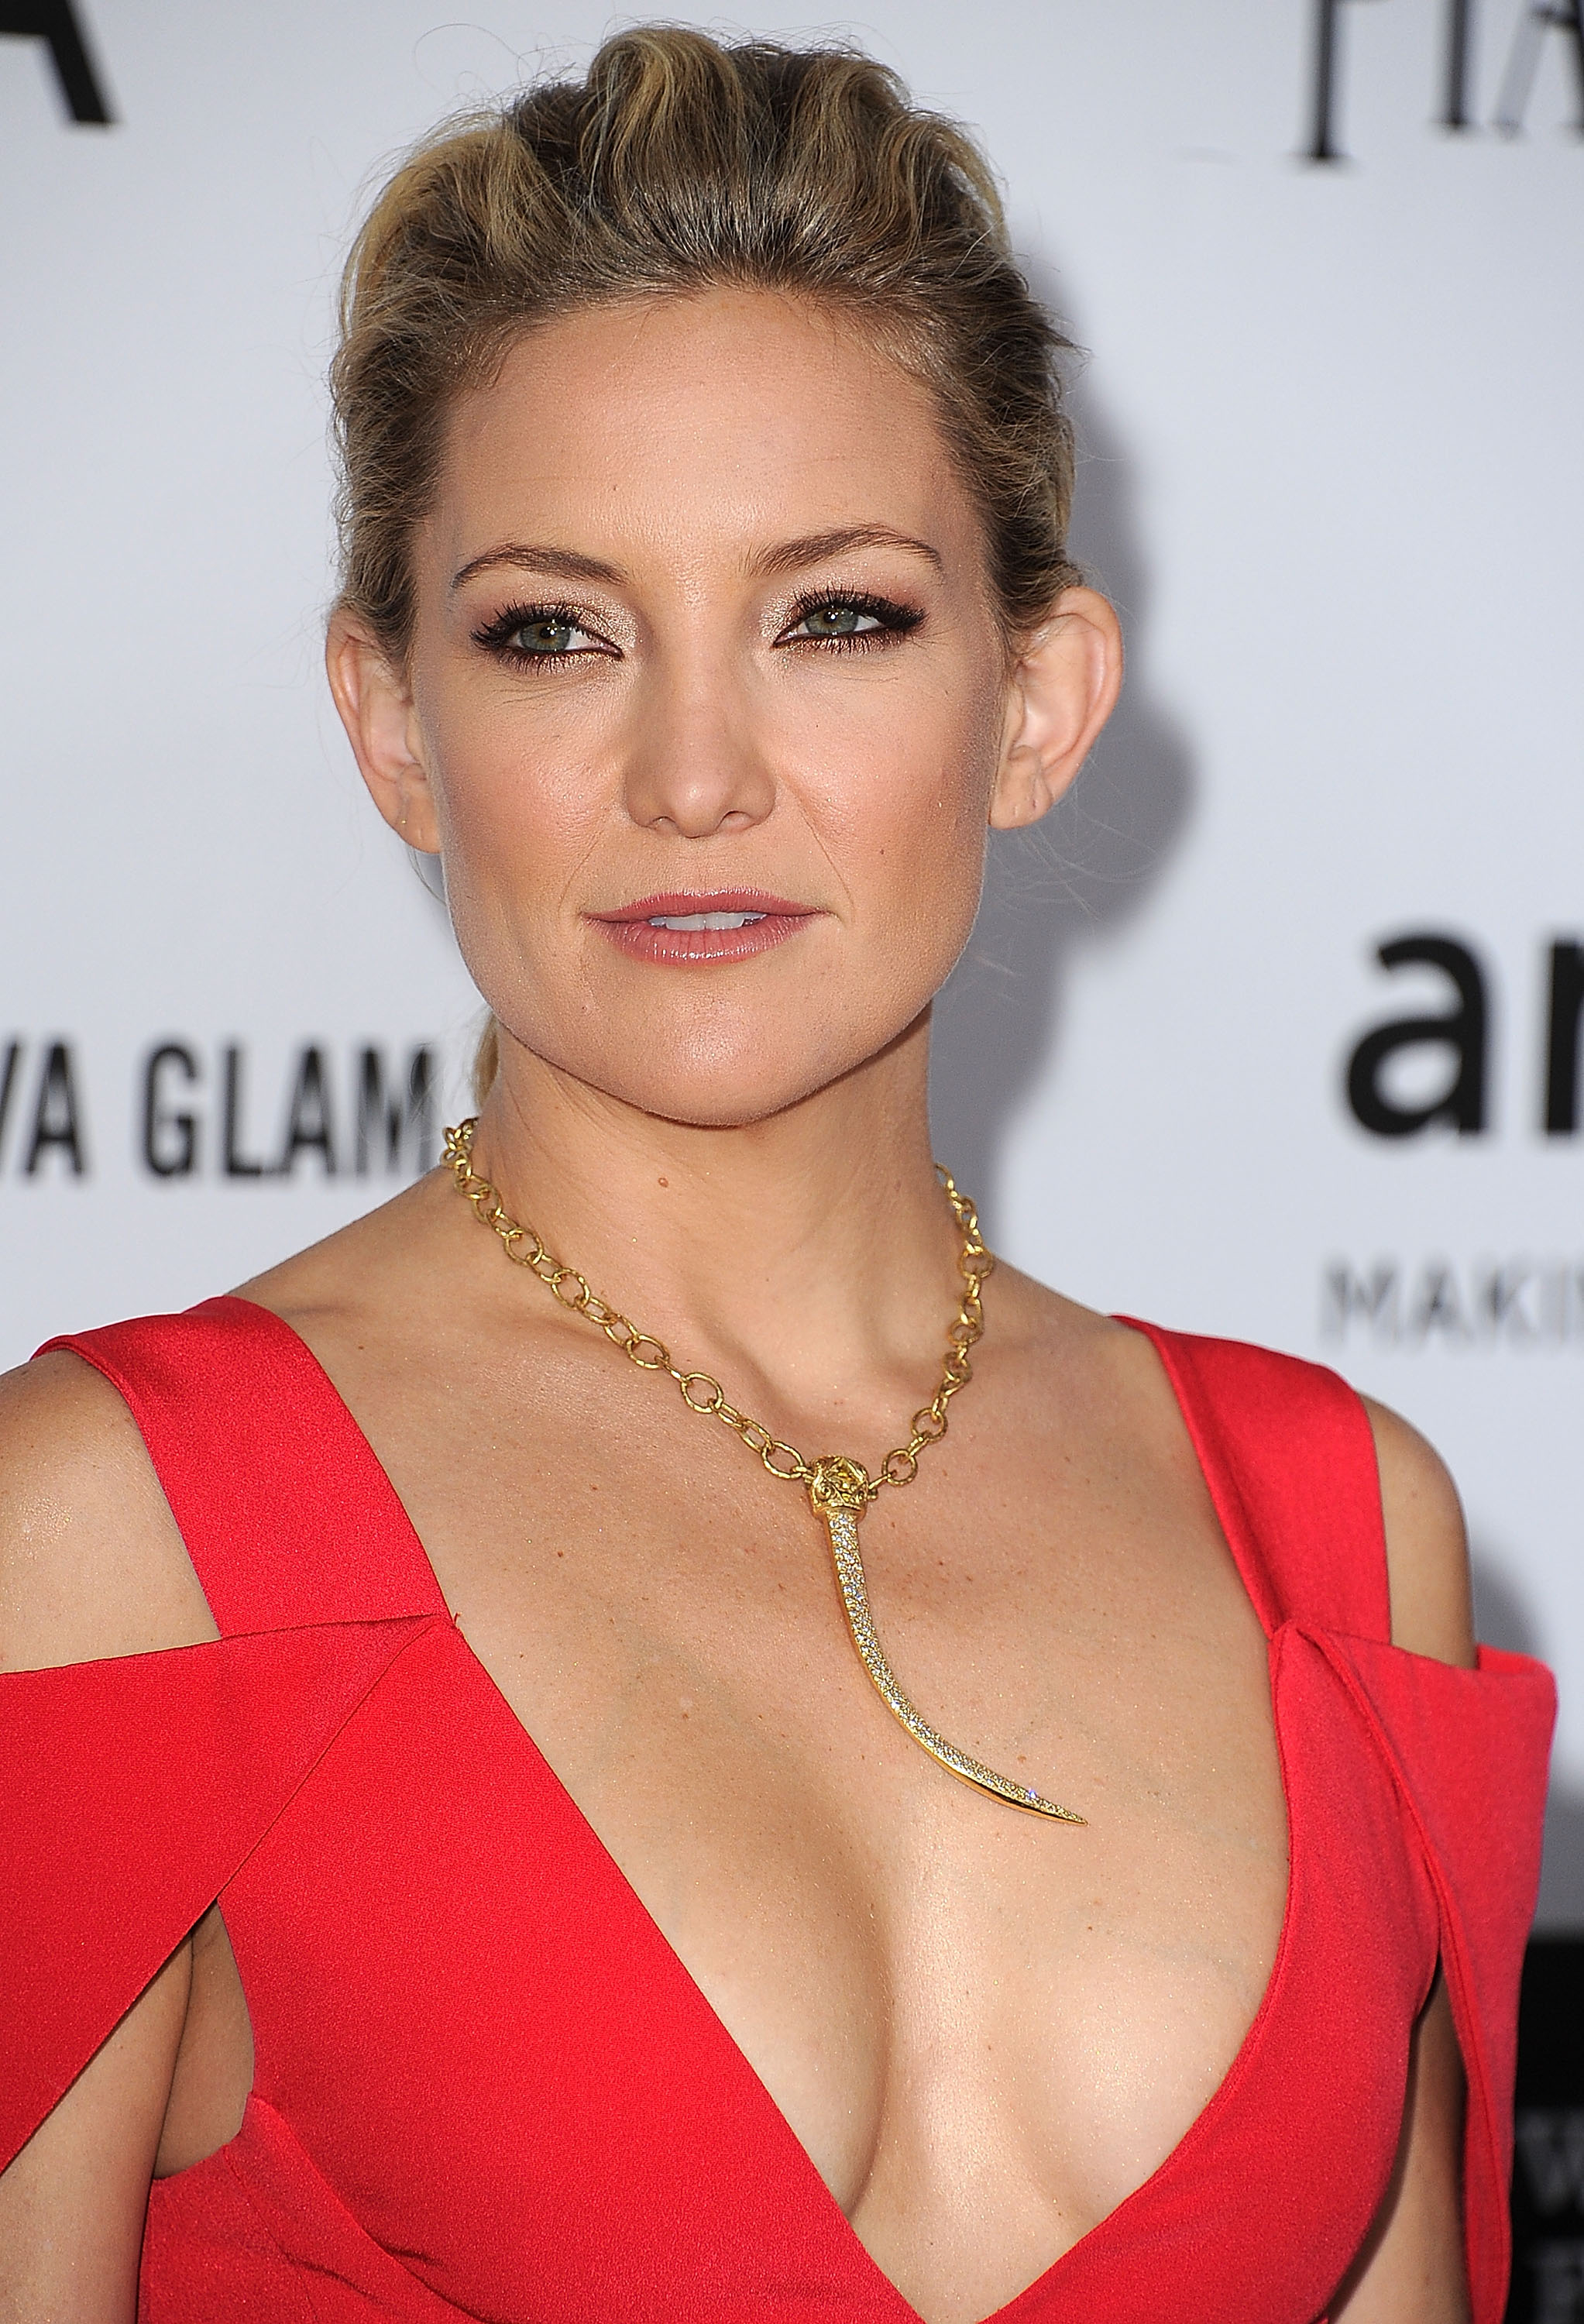 Kate Hudson sported gold accessories at the event in LA.